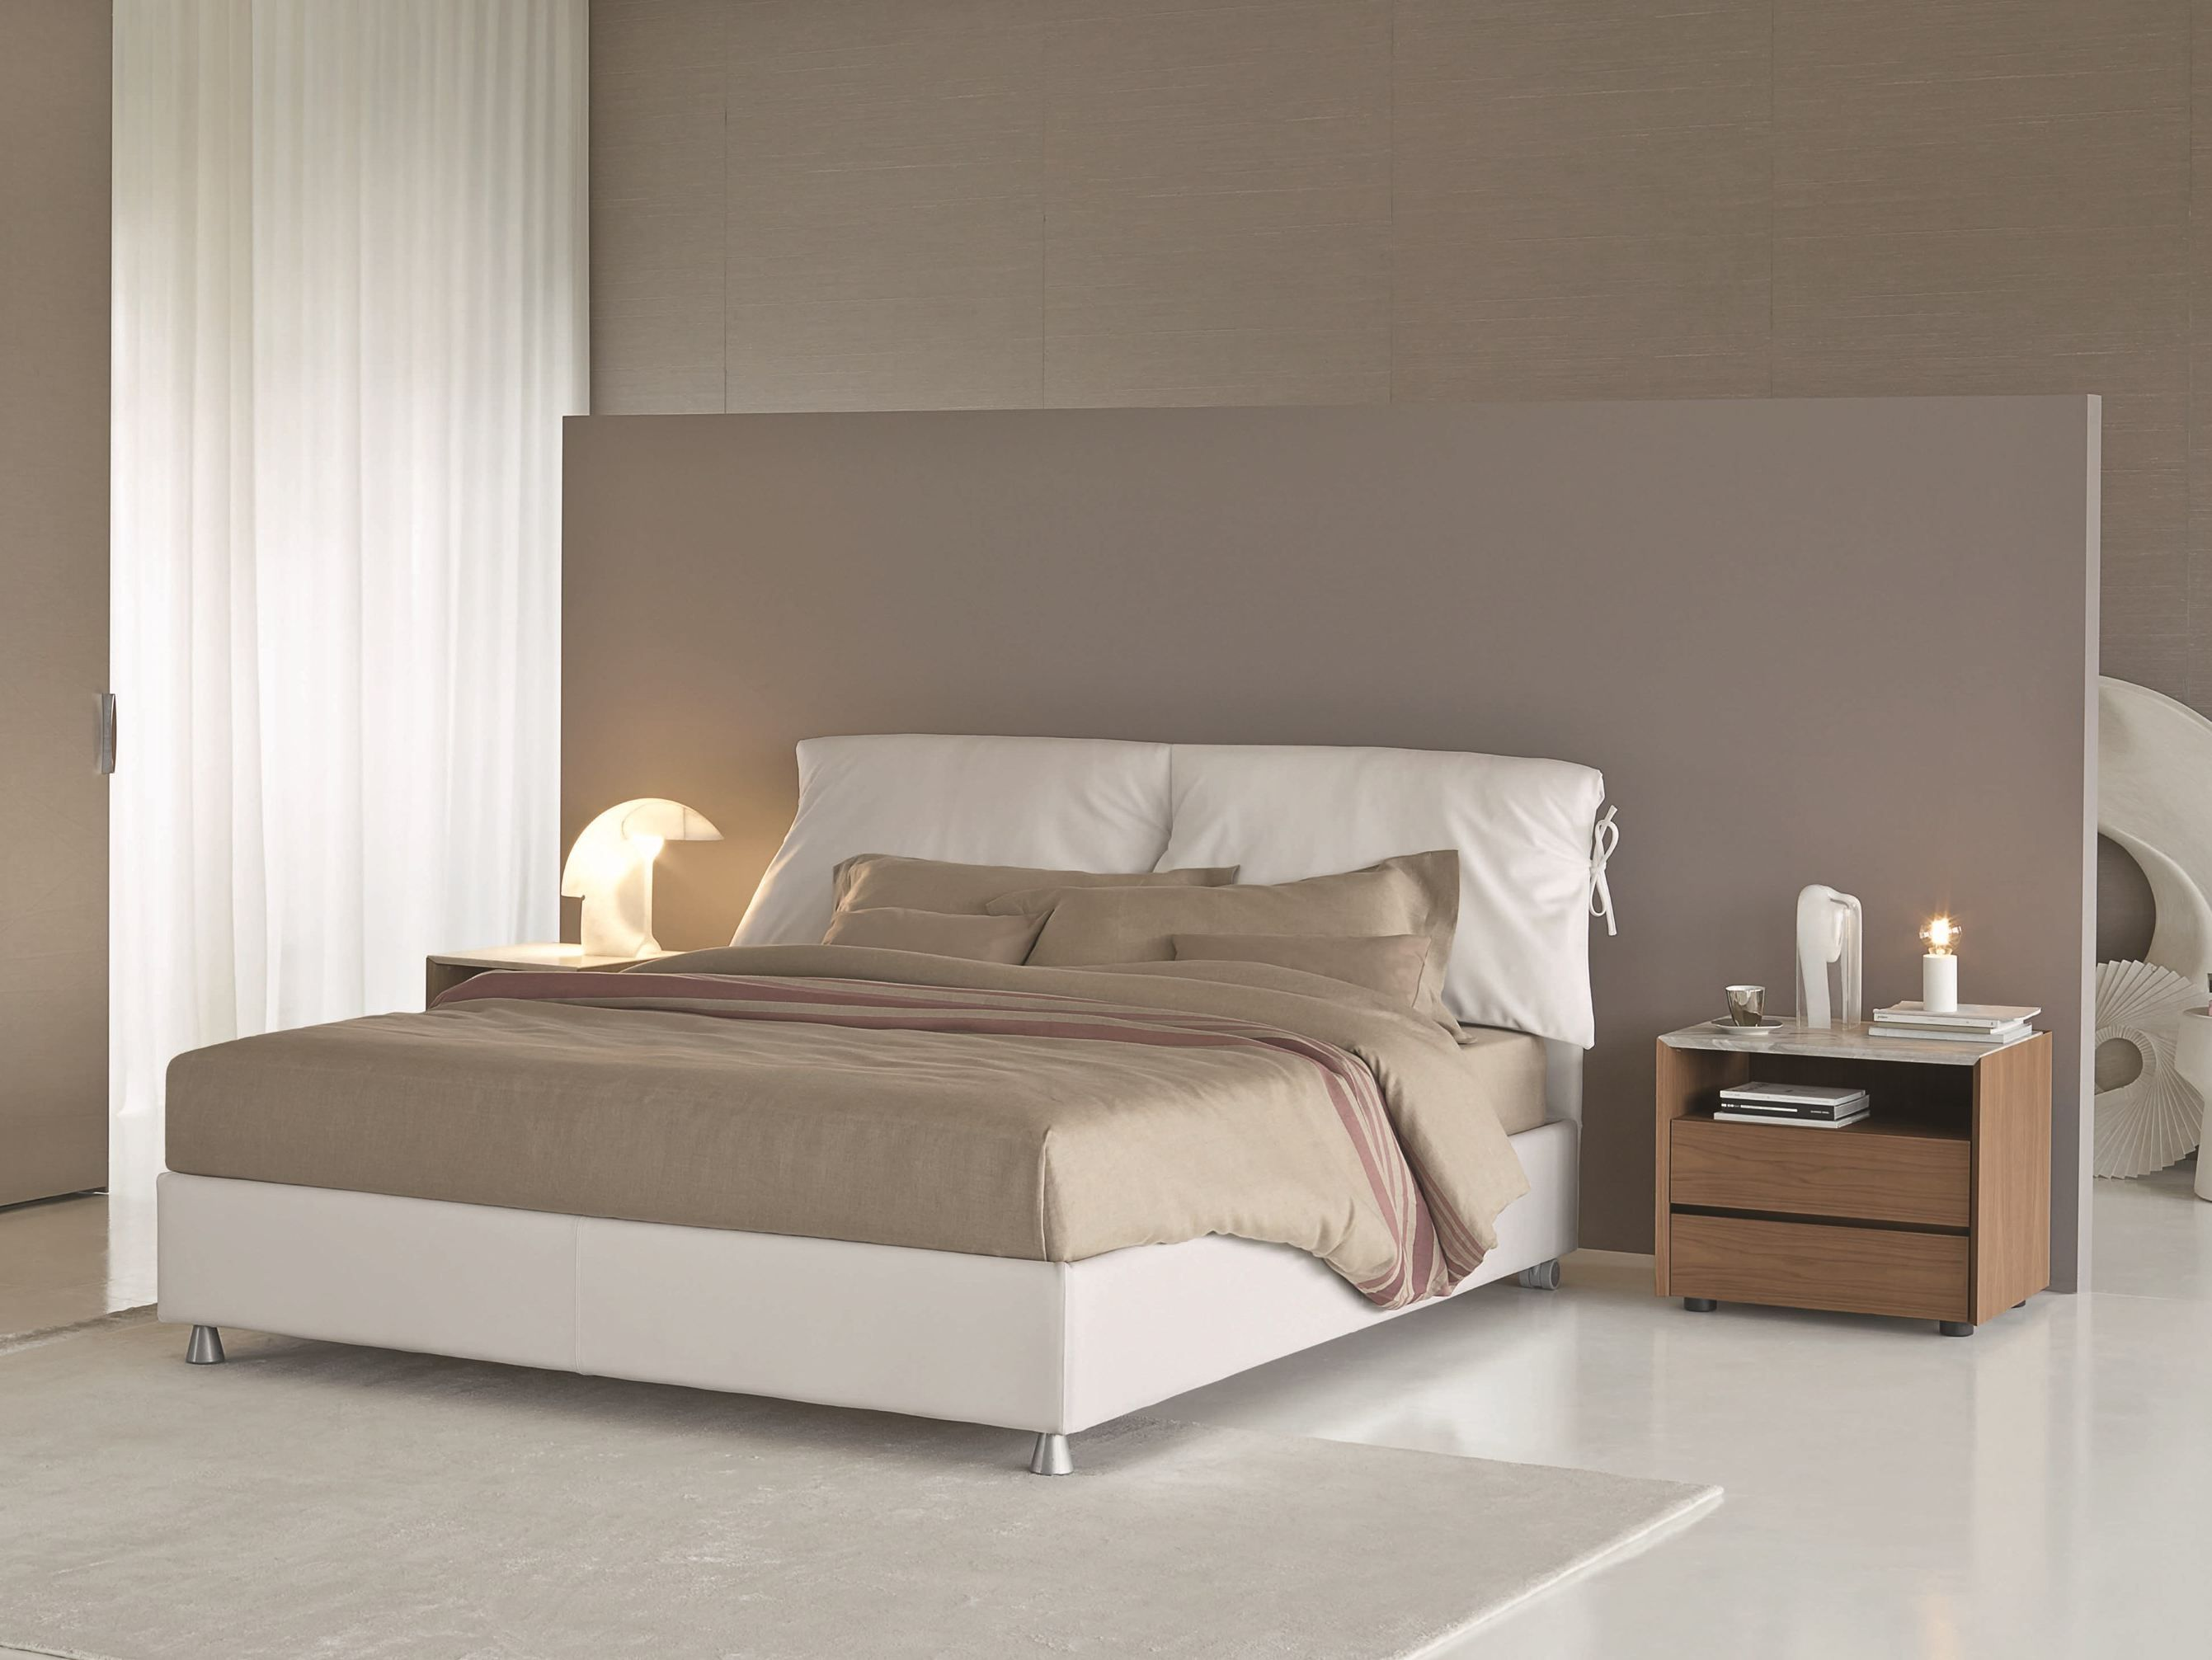 Letto matrimoniale sfoderabile NATHALIE Serie Nathalie by ...